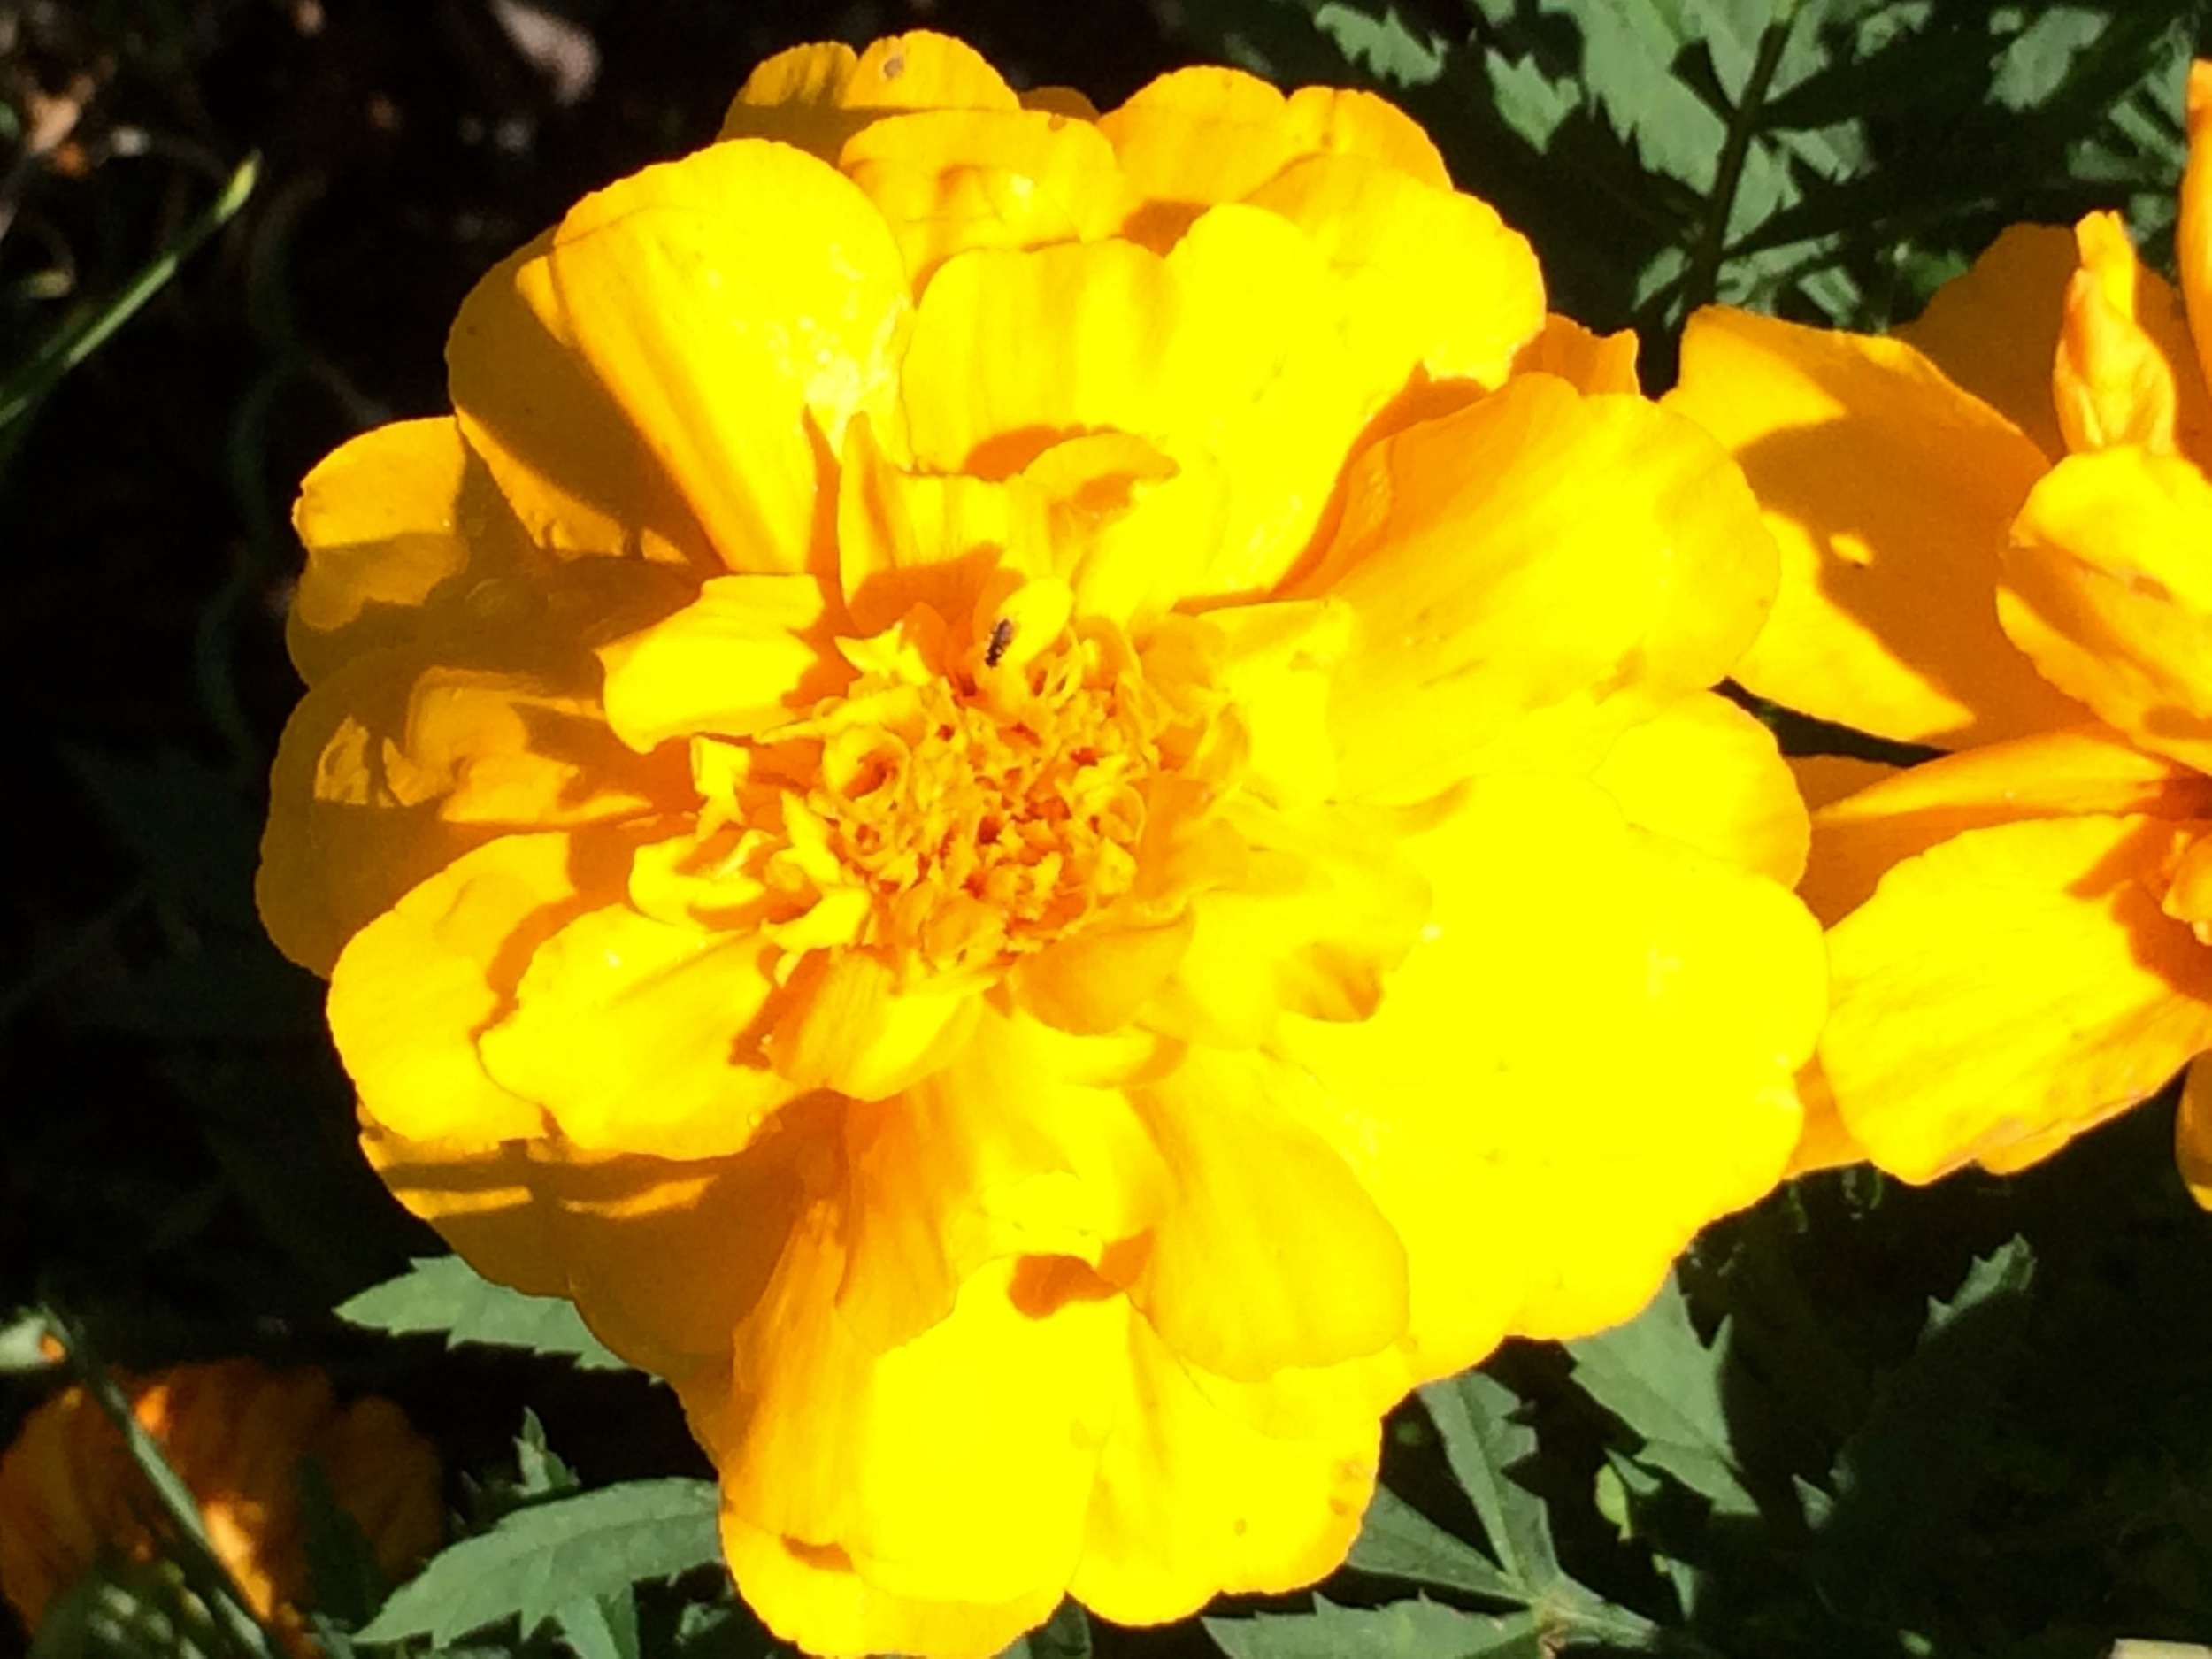 Marigolds are an easy to grow annual.